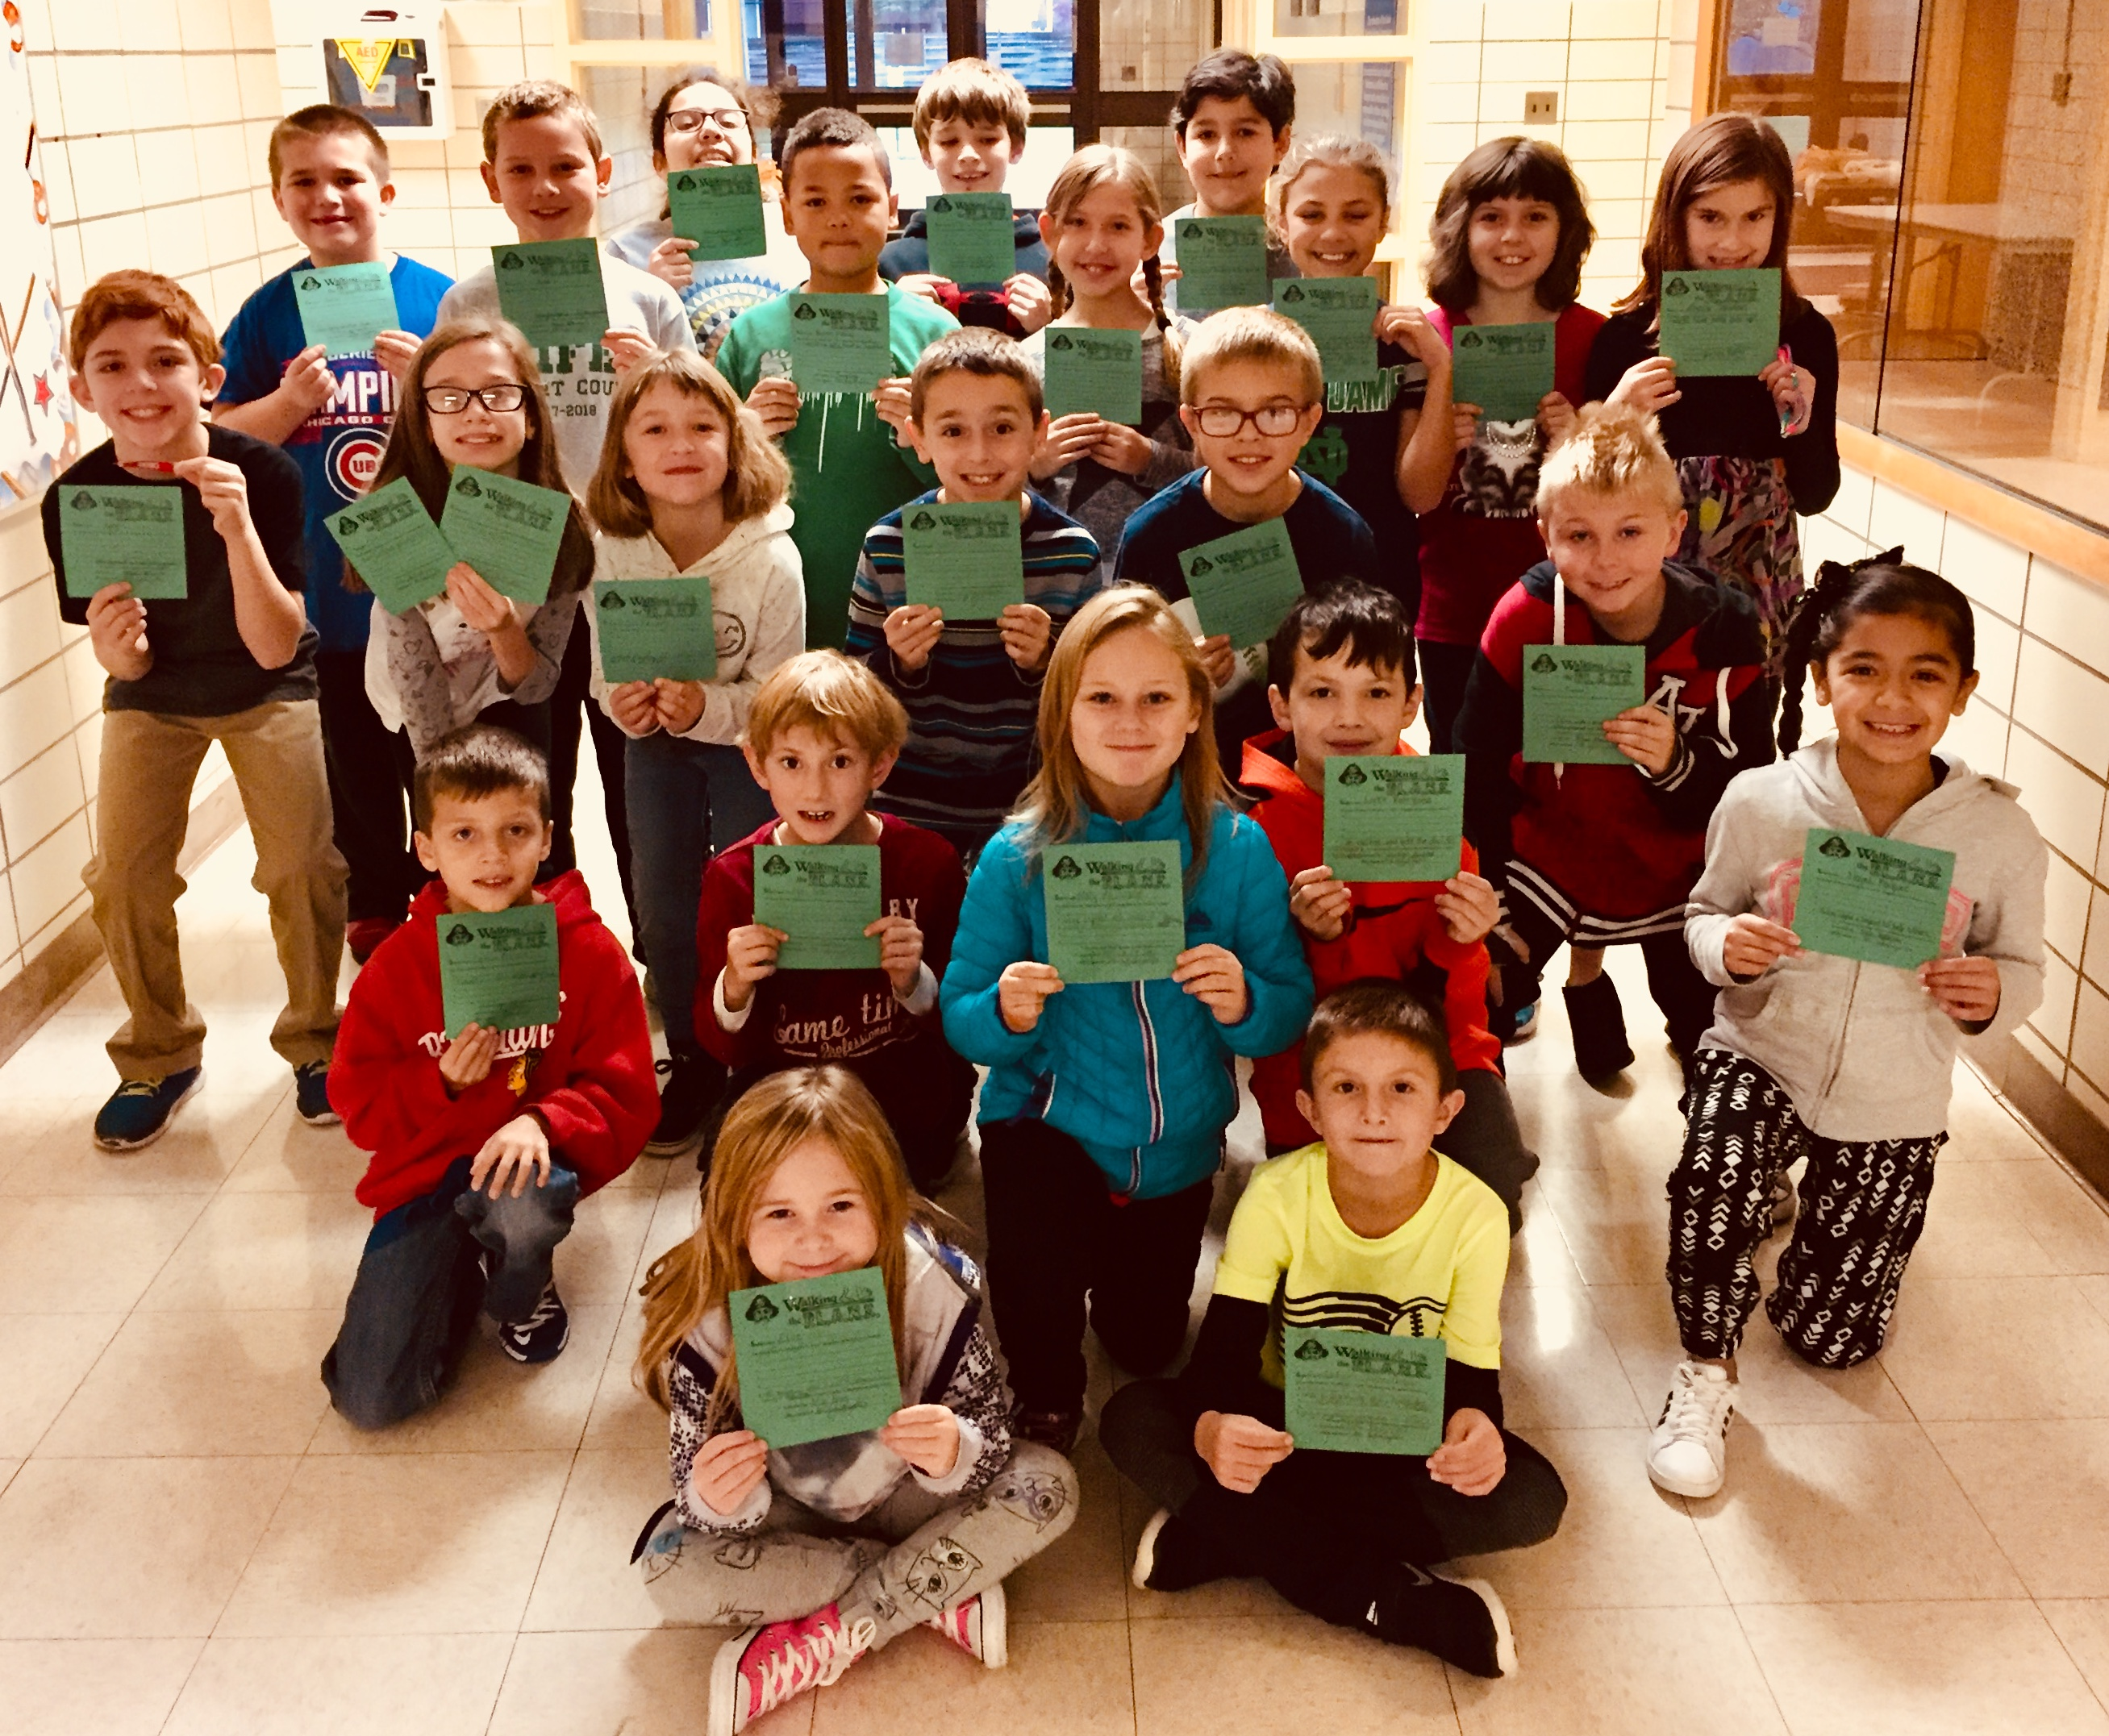 Peifer Pirate students walked the P.L.A.N.K. during September and October for Peifer's positive citizenship incentive program.